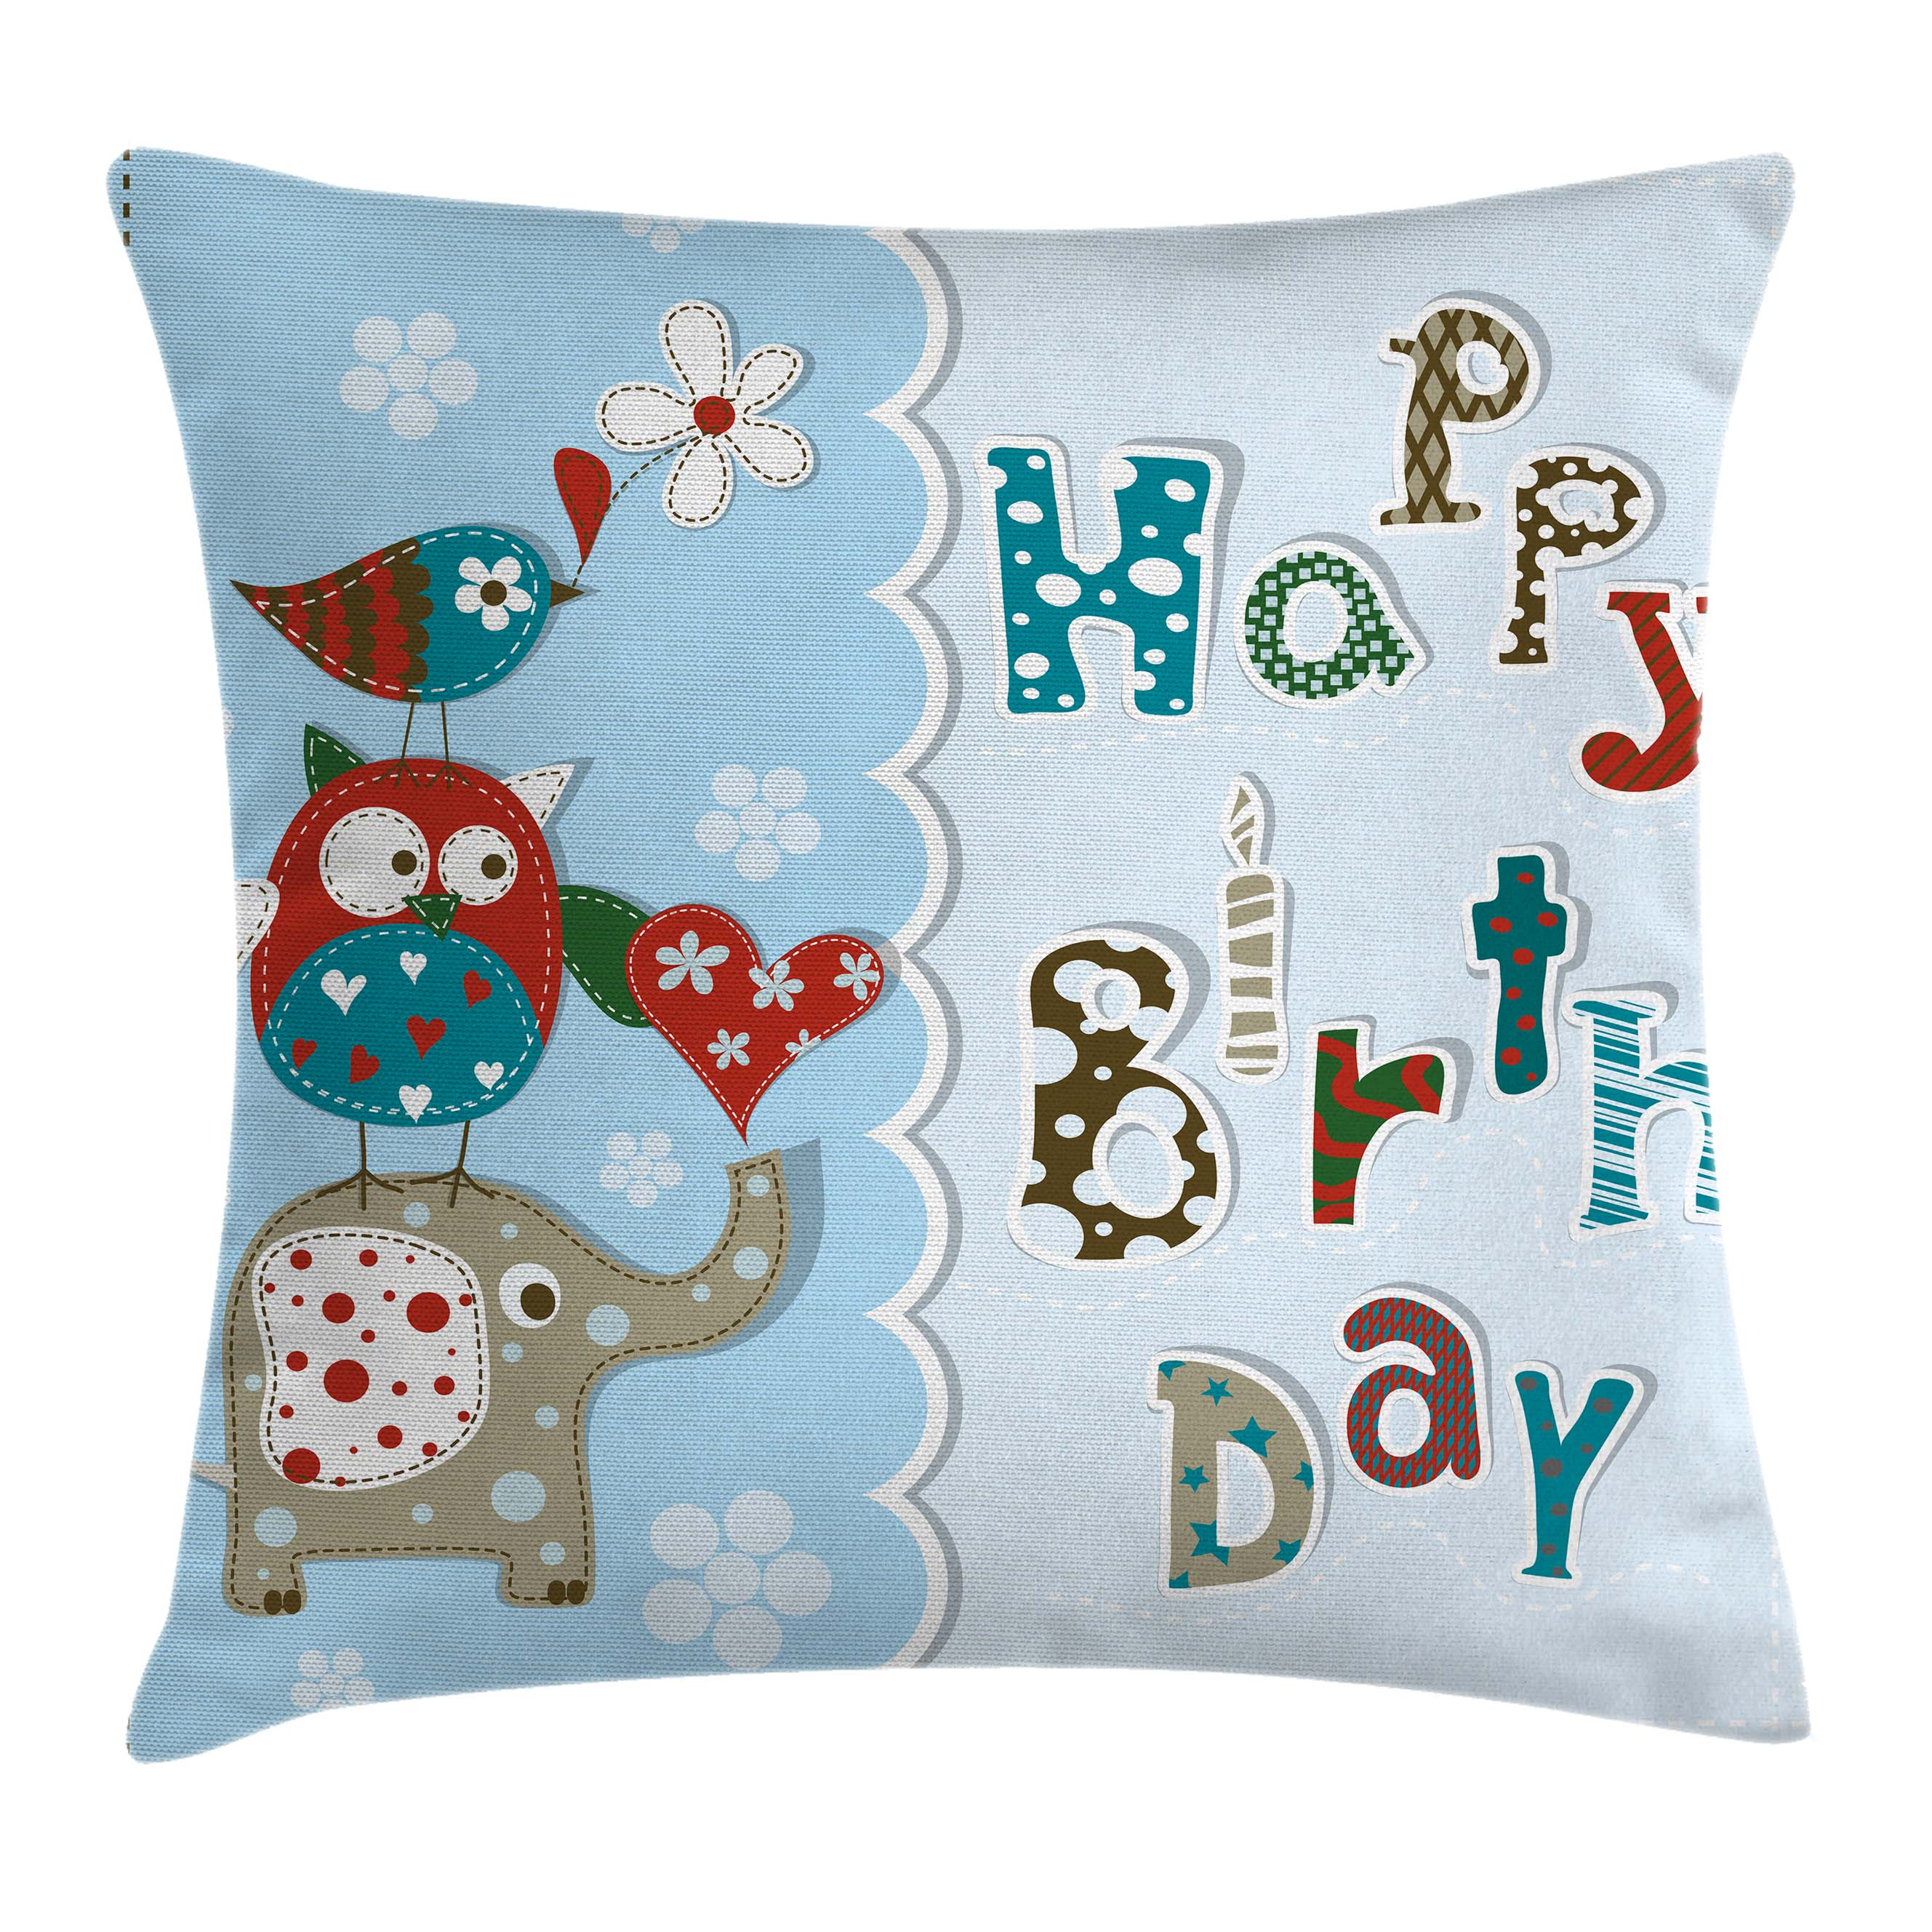 Birthday Decorations for Kids Throw Pillow Cushion Cover, Patchwork Inspired Owl Birds Elephant Flowers, Decorative Square Accent Pillow Case, 16 X 16 Inches, Sky Blue and Light Blue, by Ambesonne